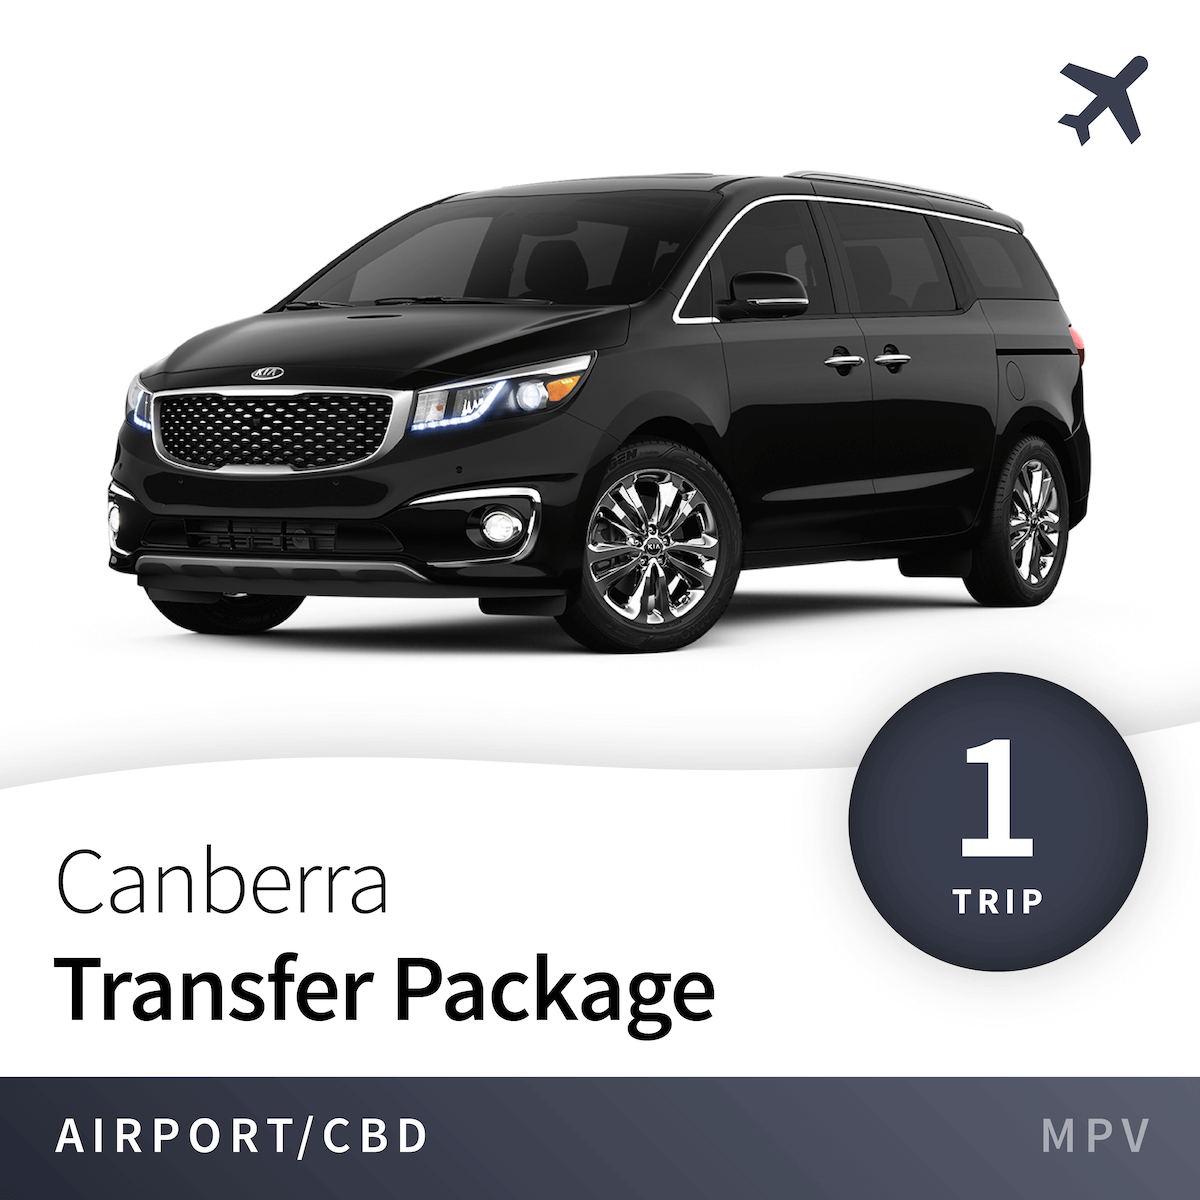 Canberra Airport Transfer Package - MPV (1 Trip) 7